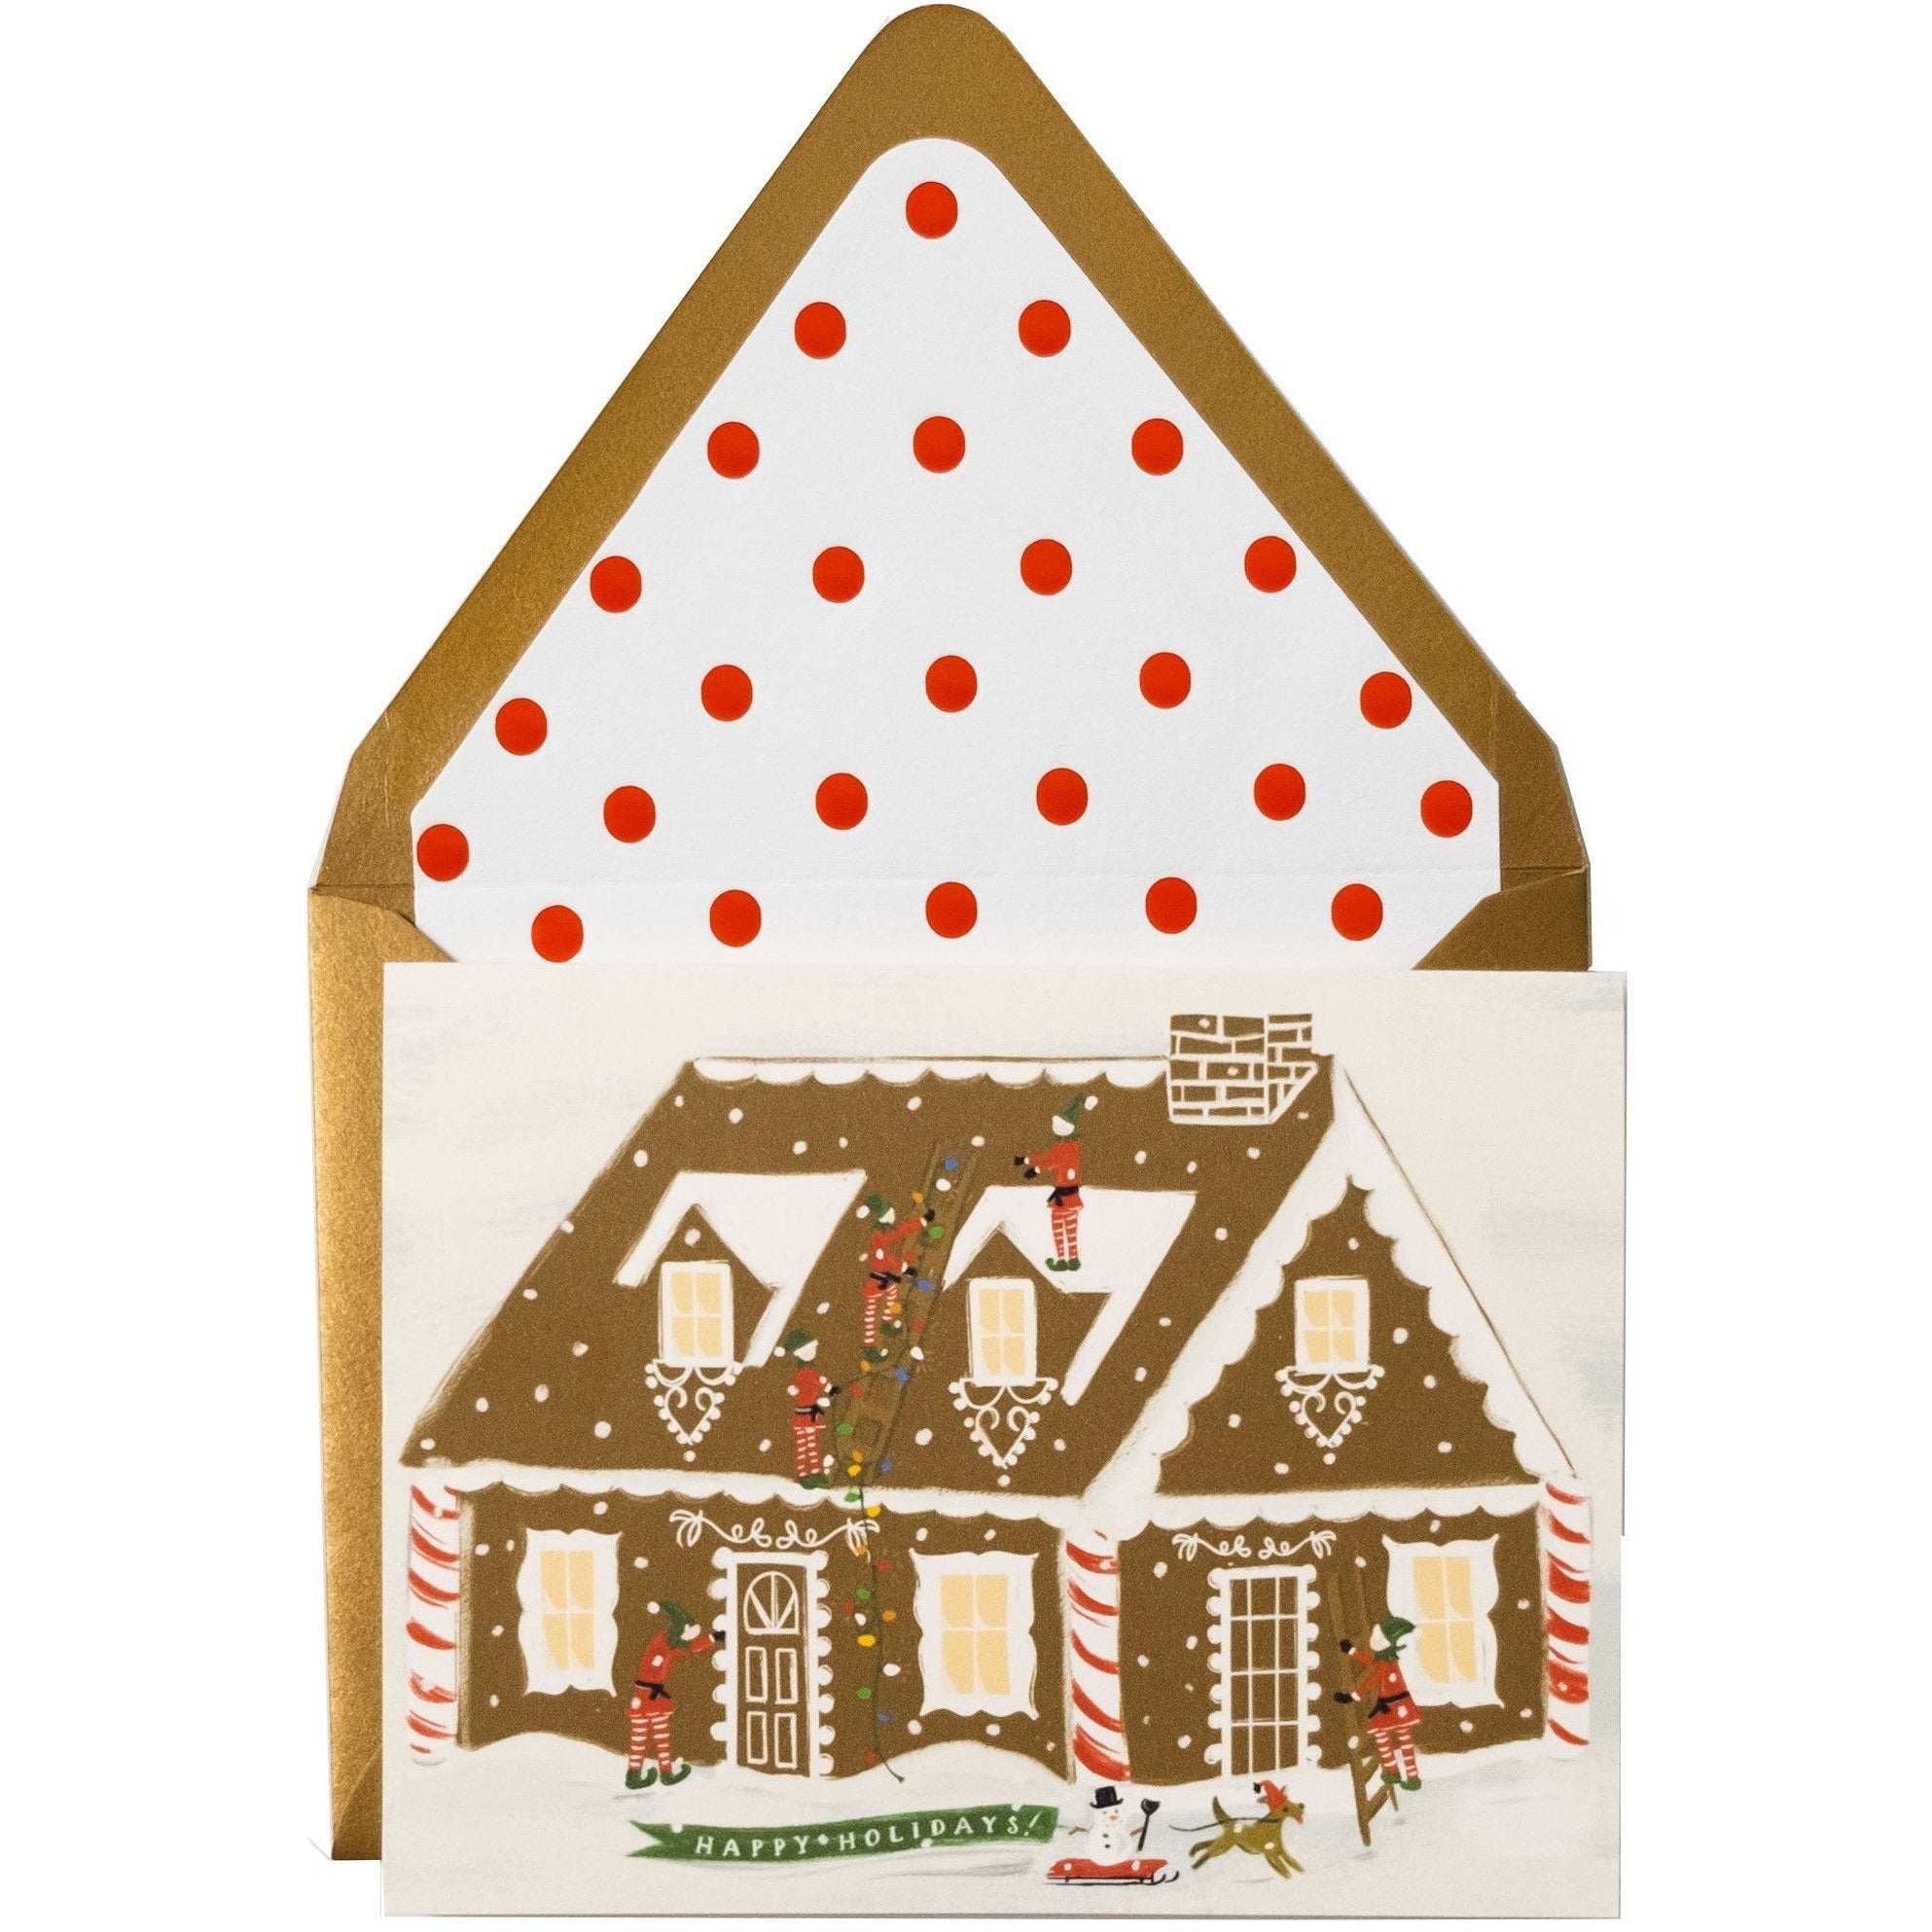 Comforting Gingerbread House Happy Holidays Card and Matching Envelope - The First Snow